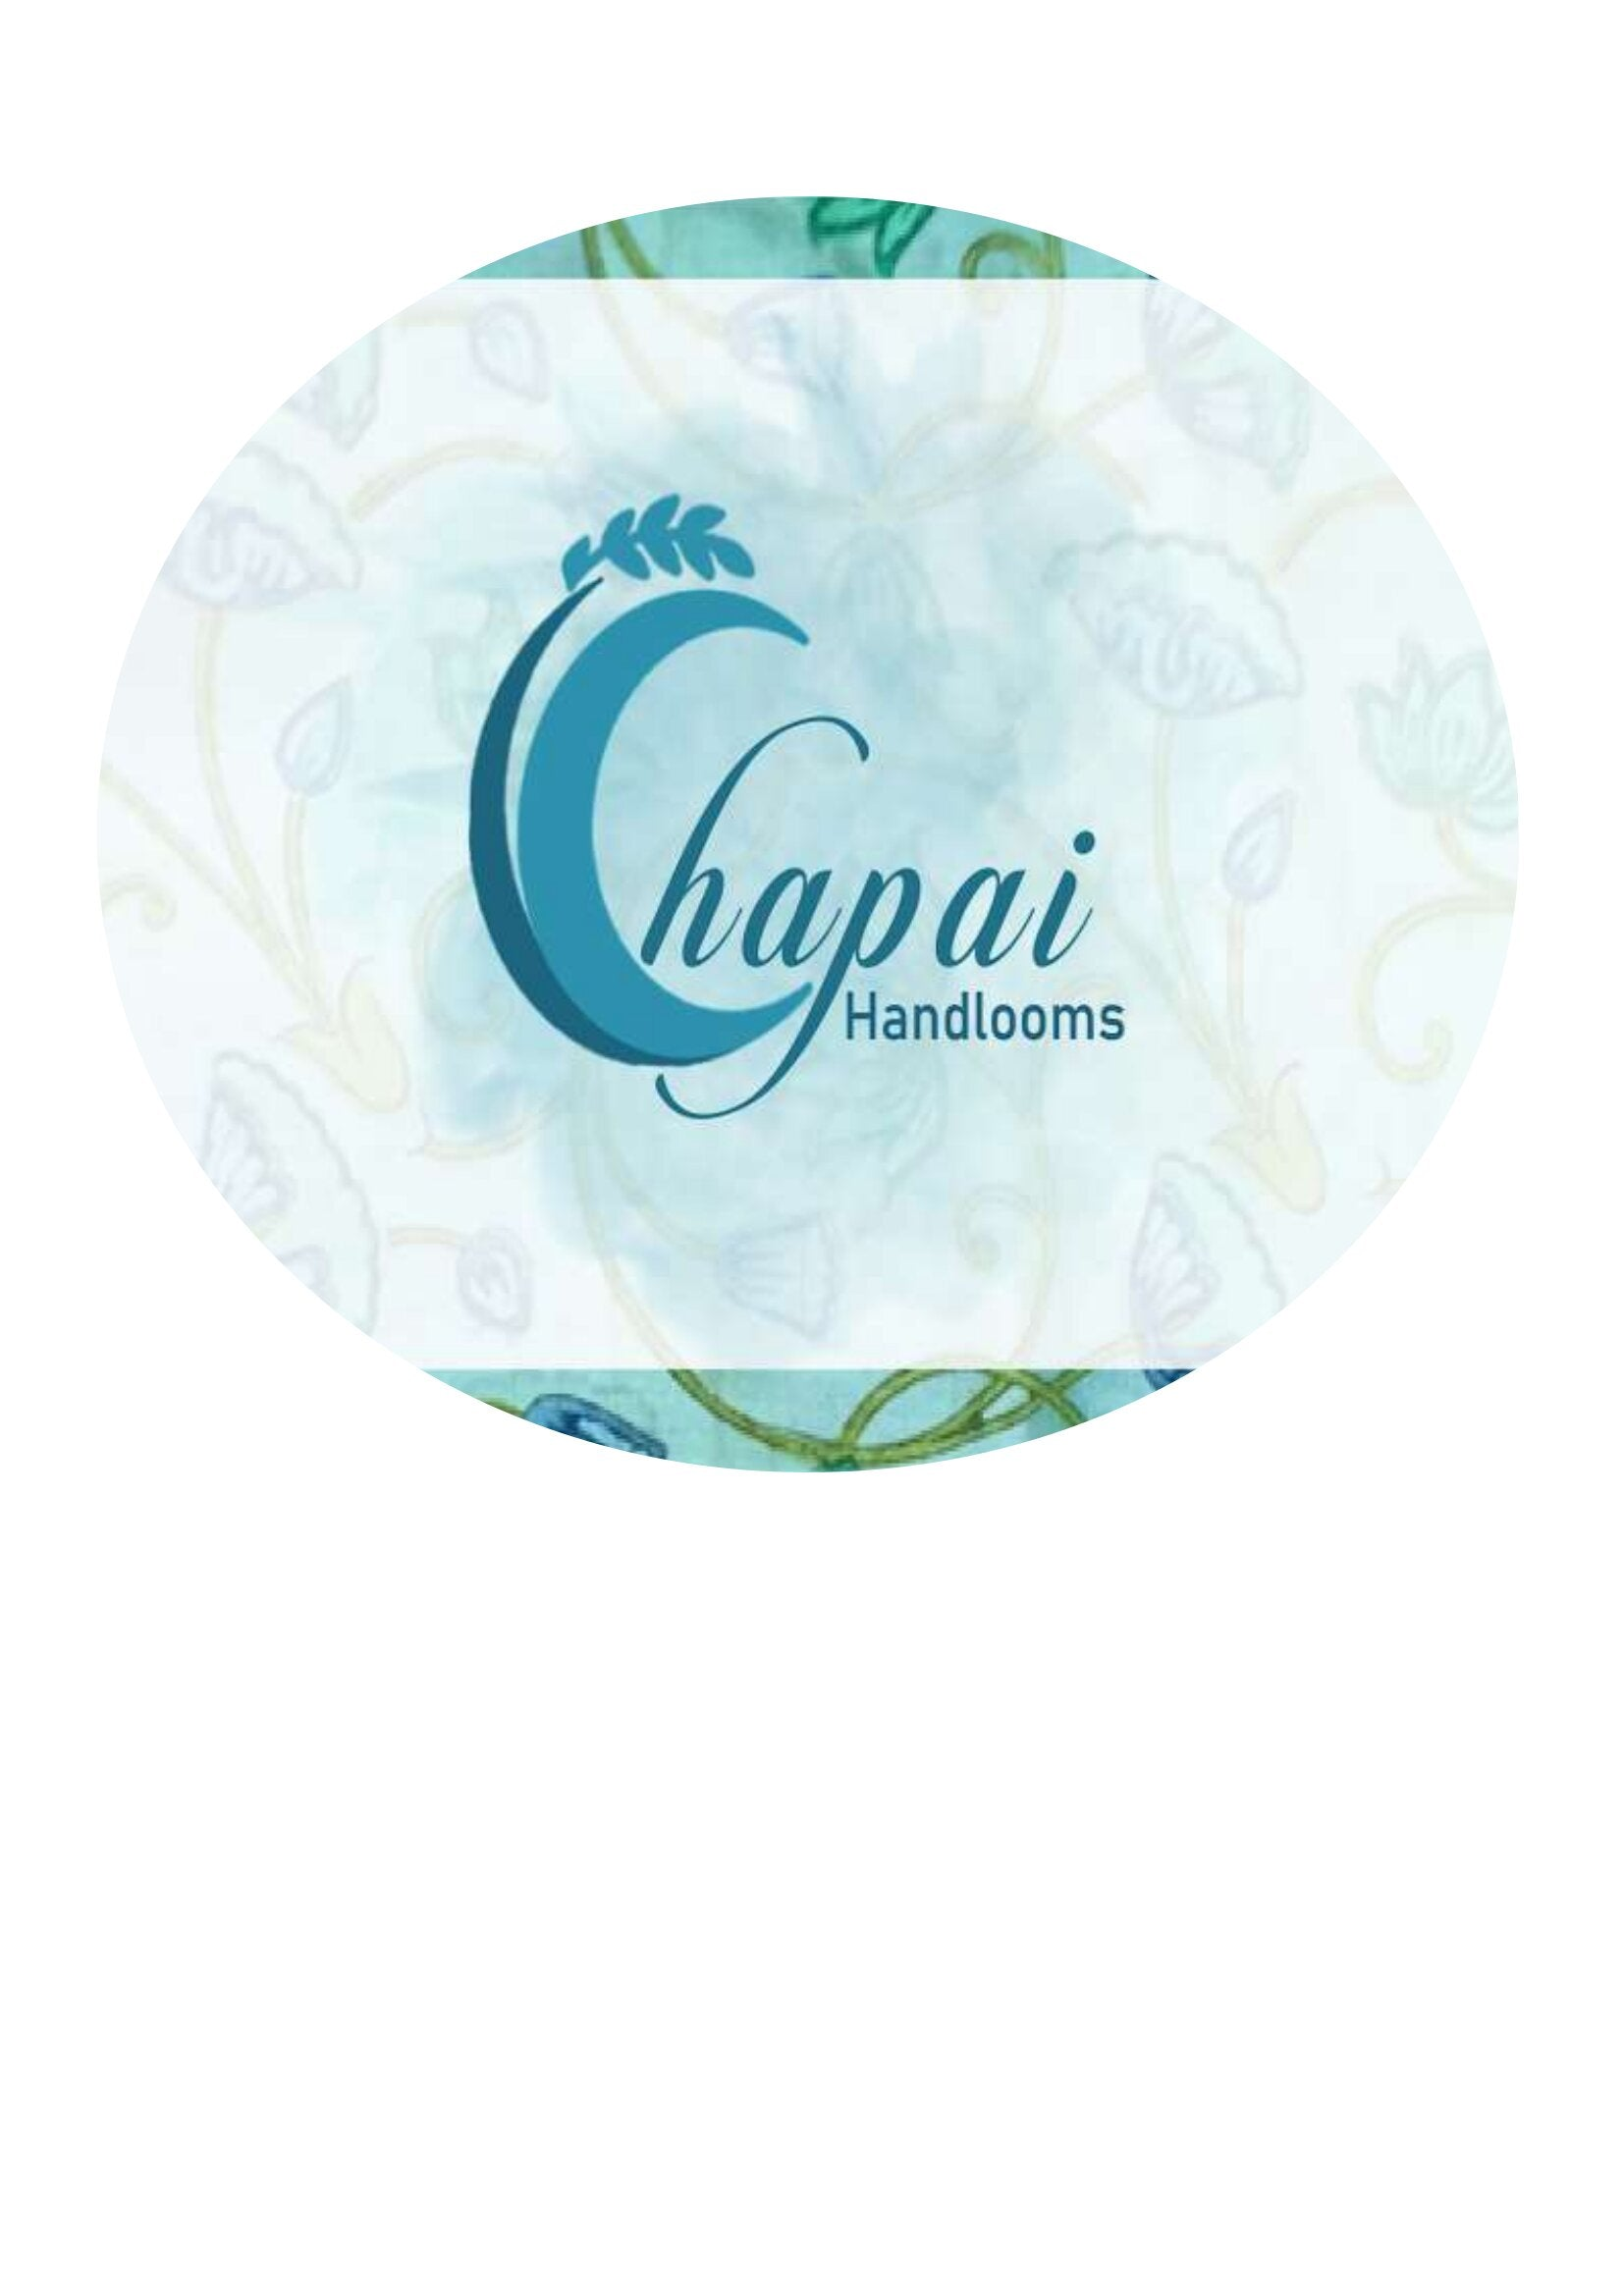 Chapai Handlooms